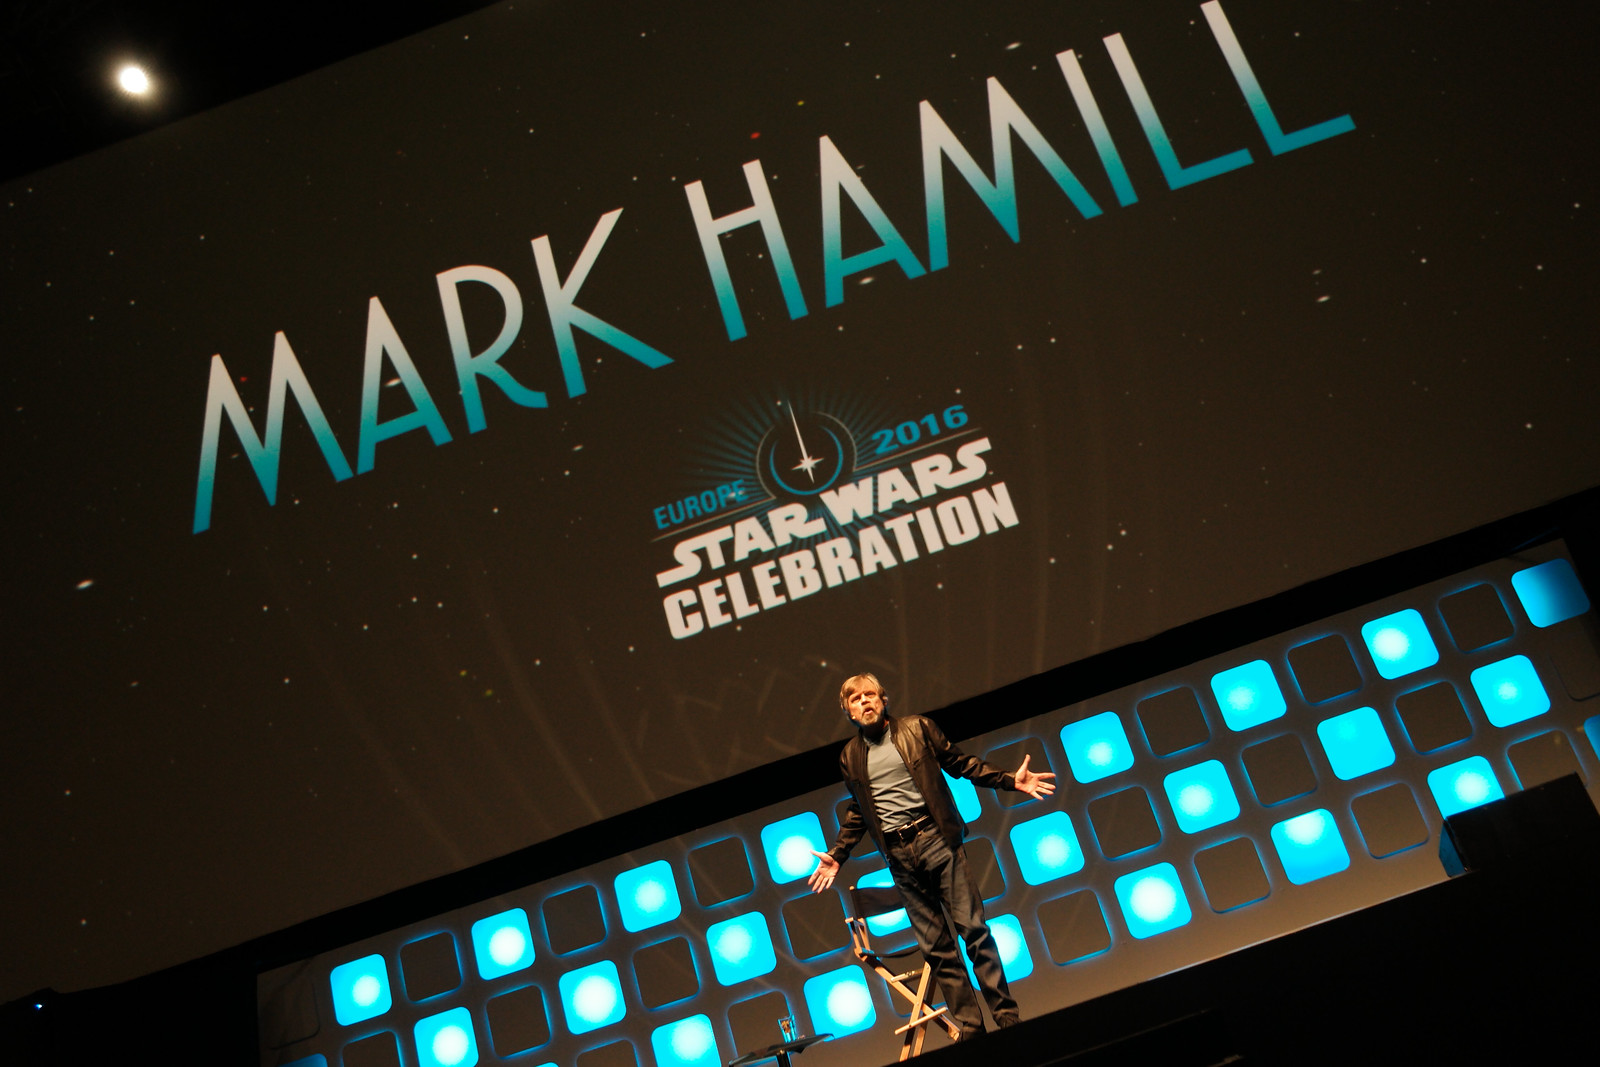 Mark Hamill - Star Wars Celebration London 2016